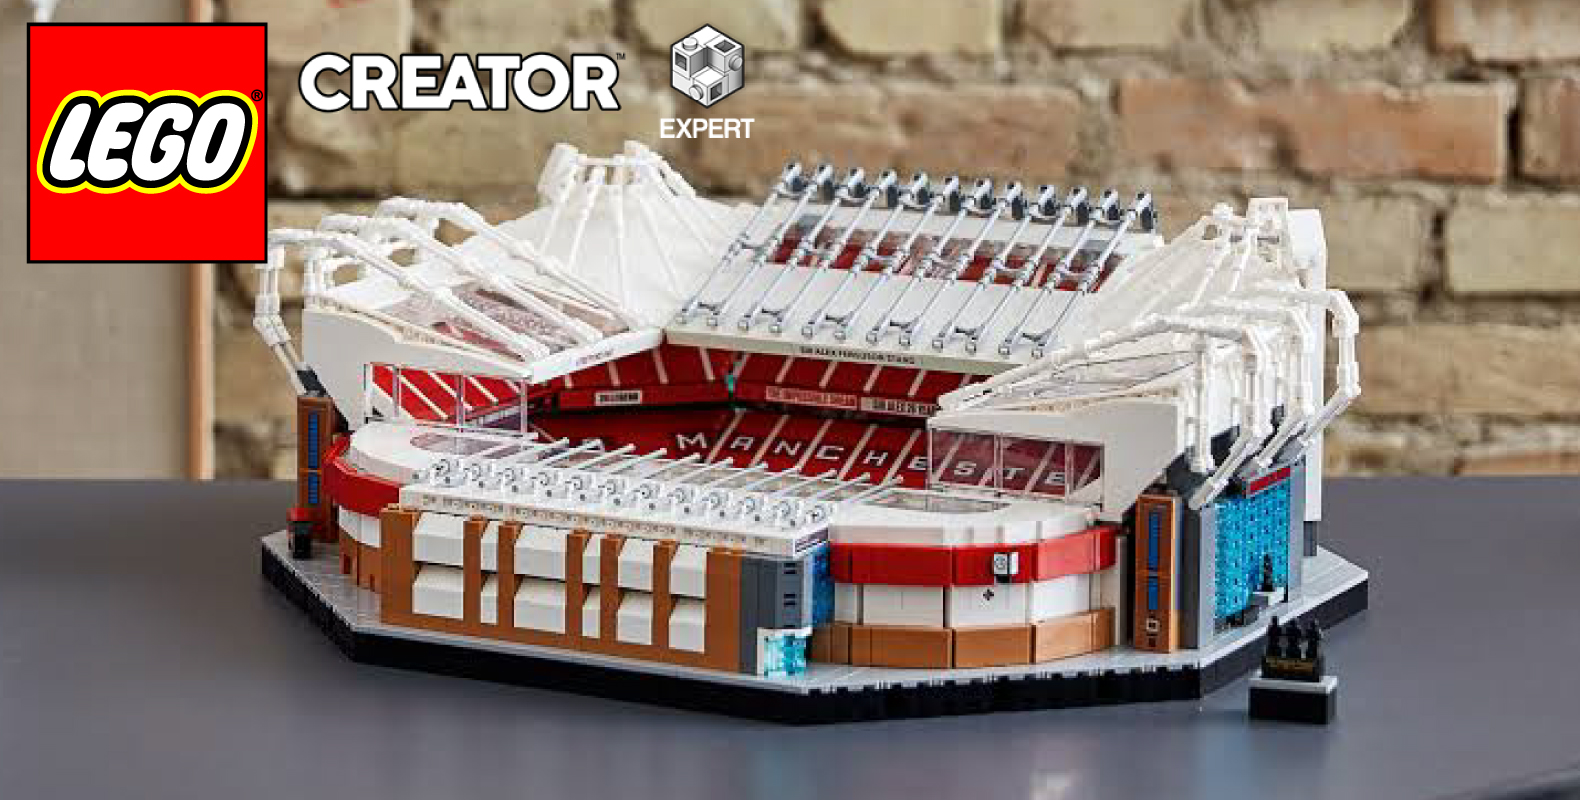 Lego Creator Manchester United Old Trafford 04.29.20 updated 05.15.20